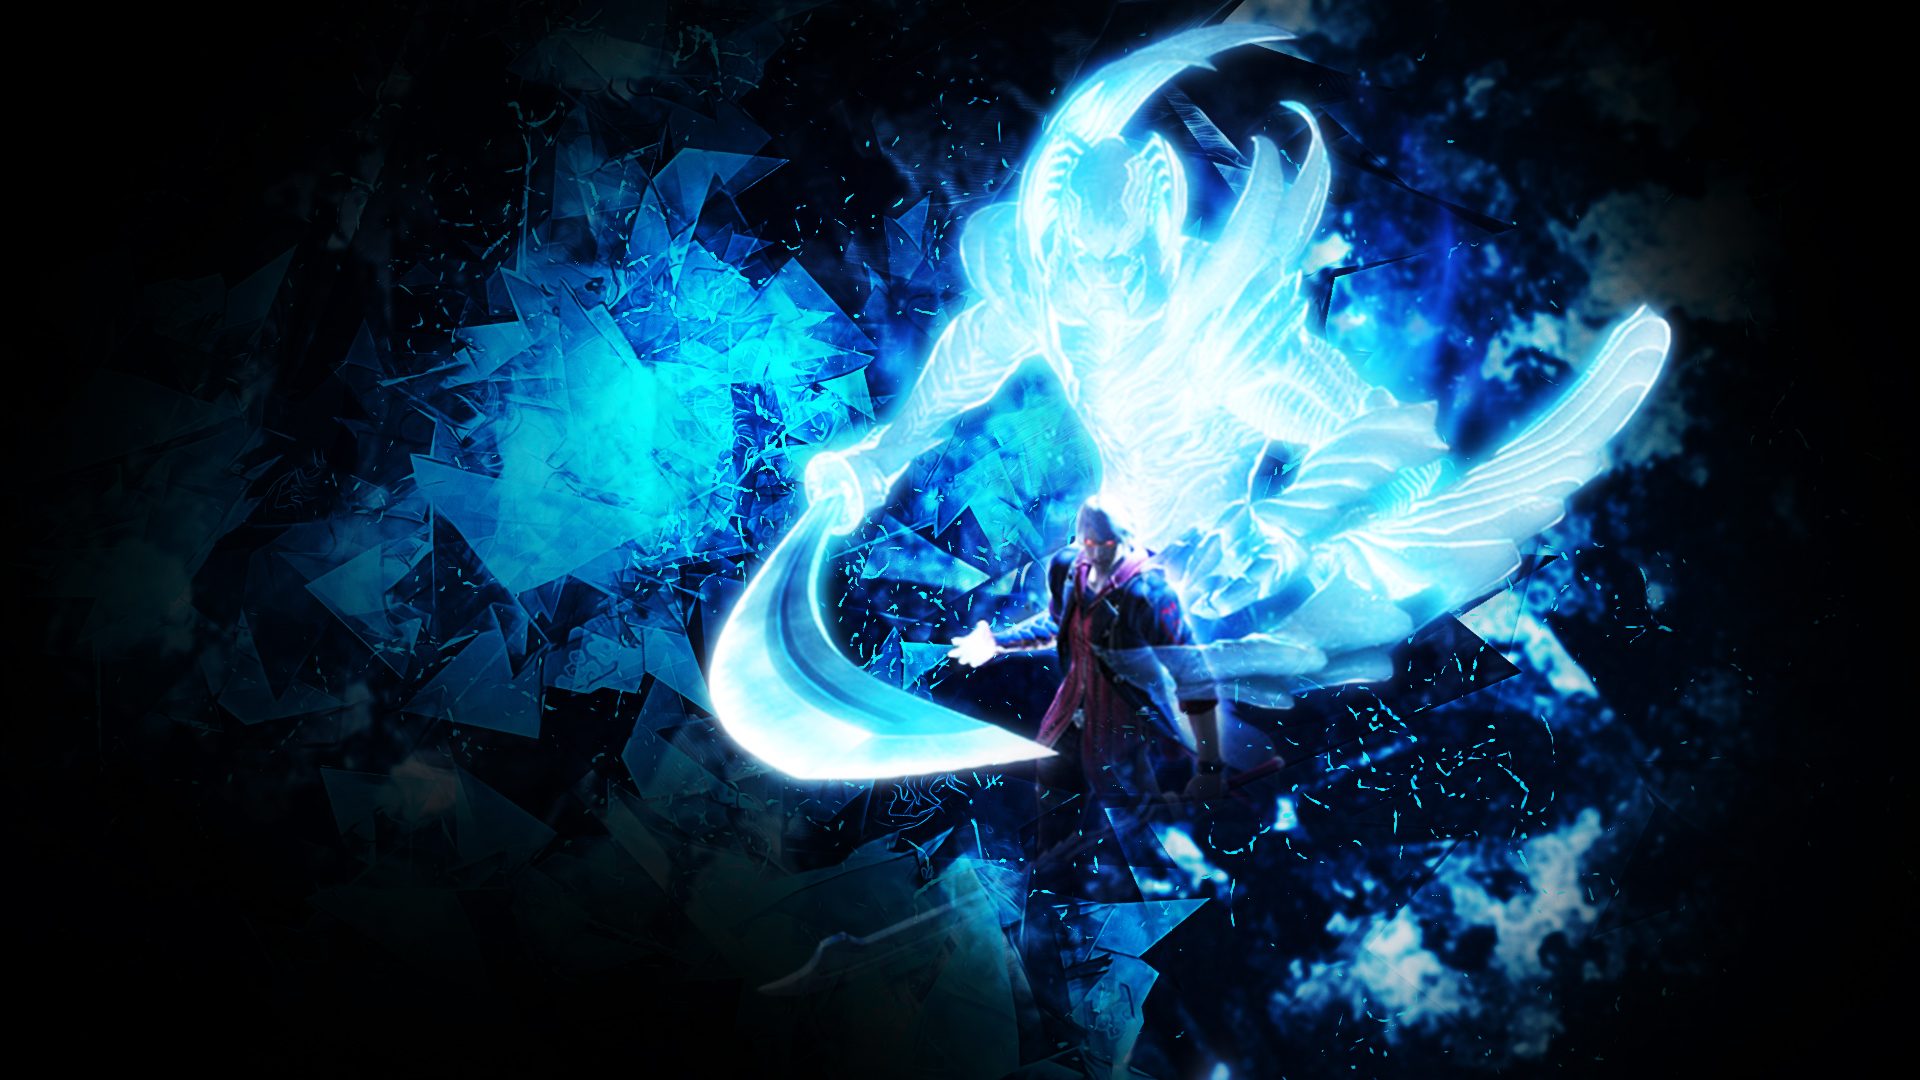 Nero full hd wallpaper and background image 1920x1080 id607191 video game devil may cry 4 nero devil may cry devil may cry voltagebd Gallery